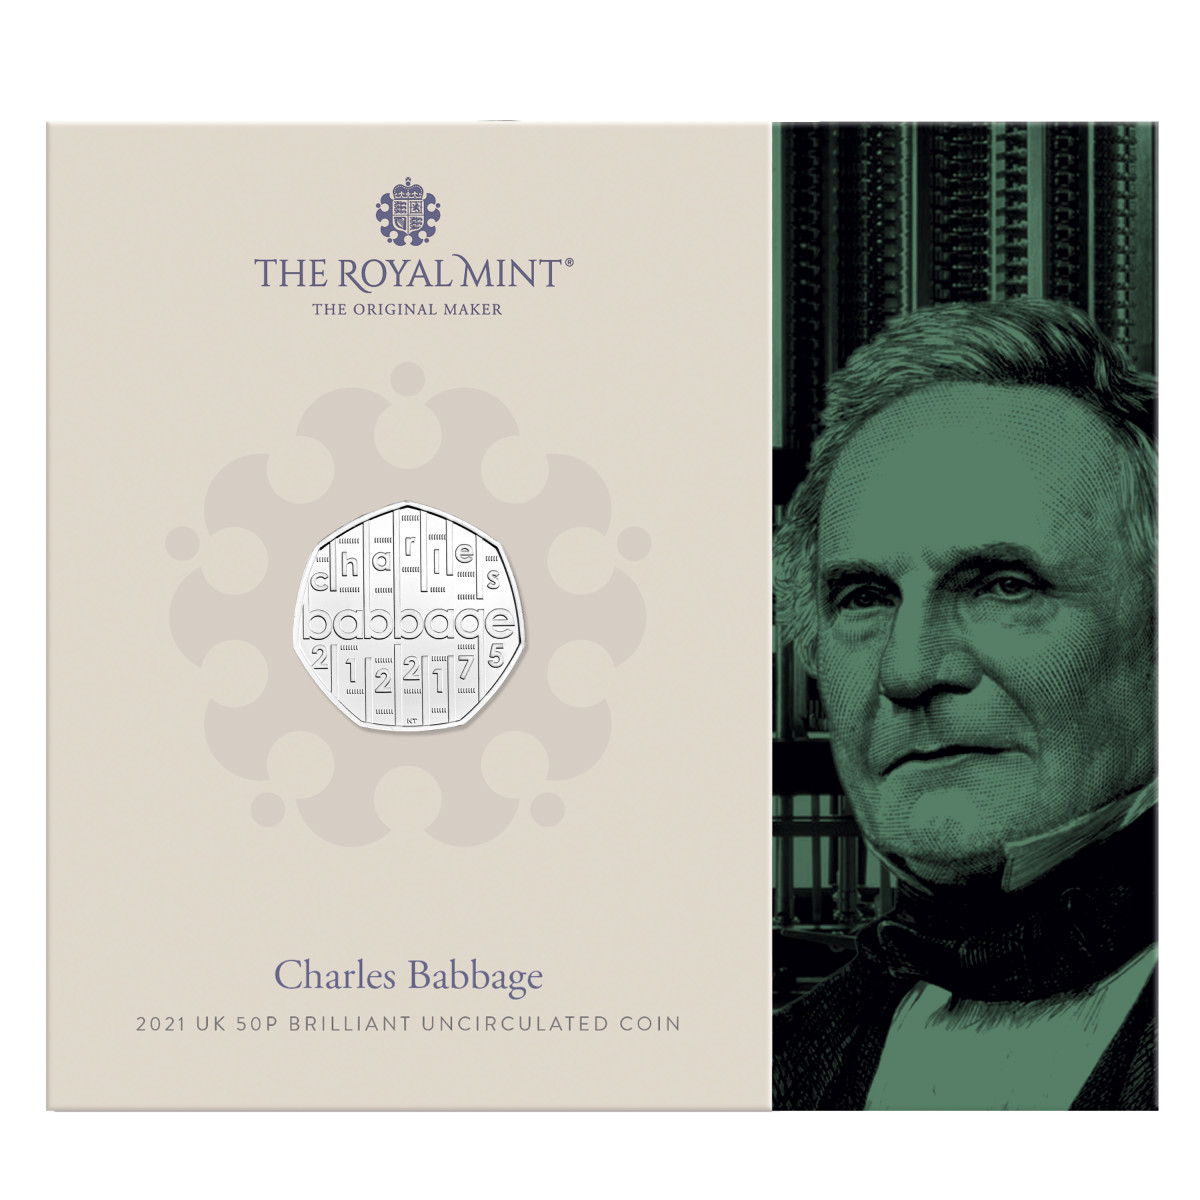 An image of the inventor Charles Babbage is featured on the brilliant uncirculated coin folder packaging, available today at the Royal Mint website for $12.00.